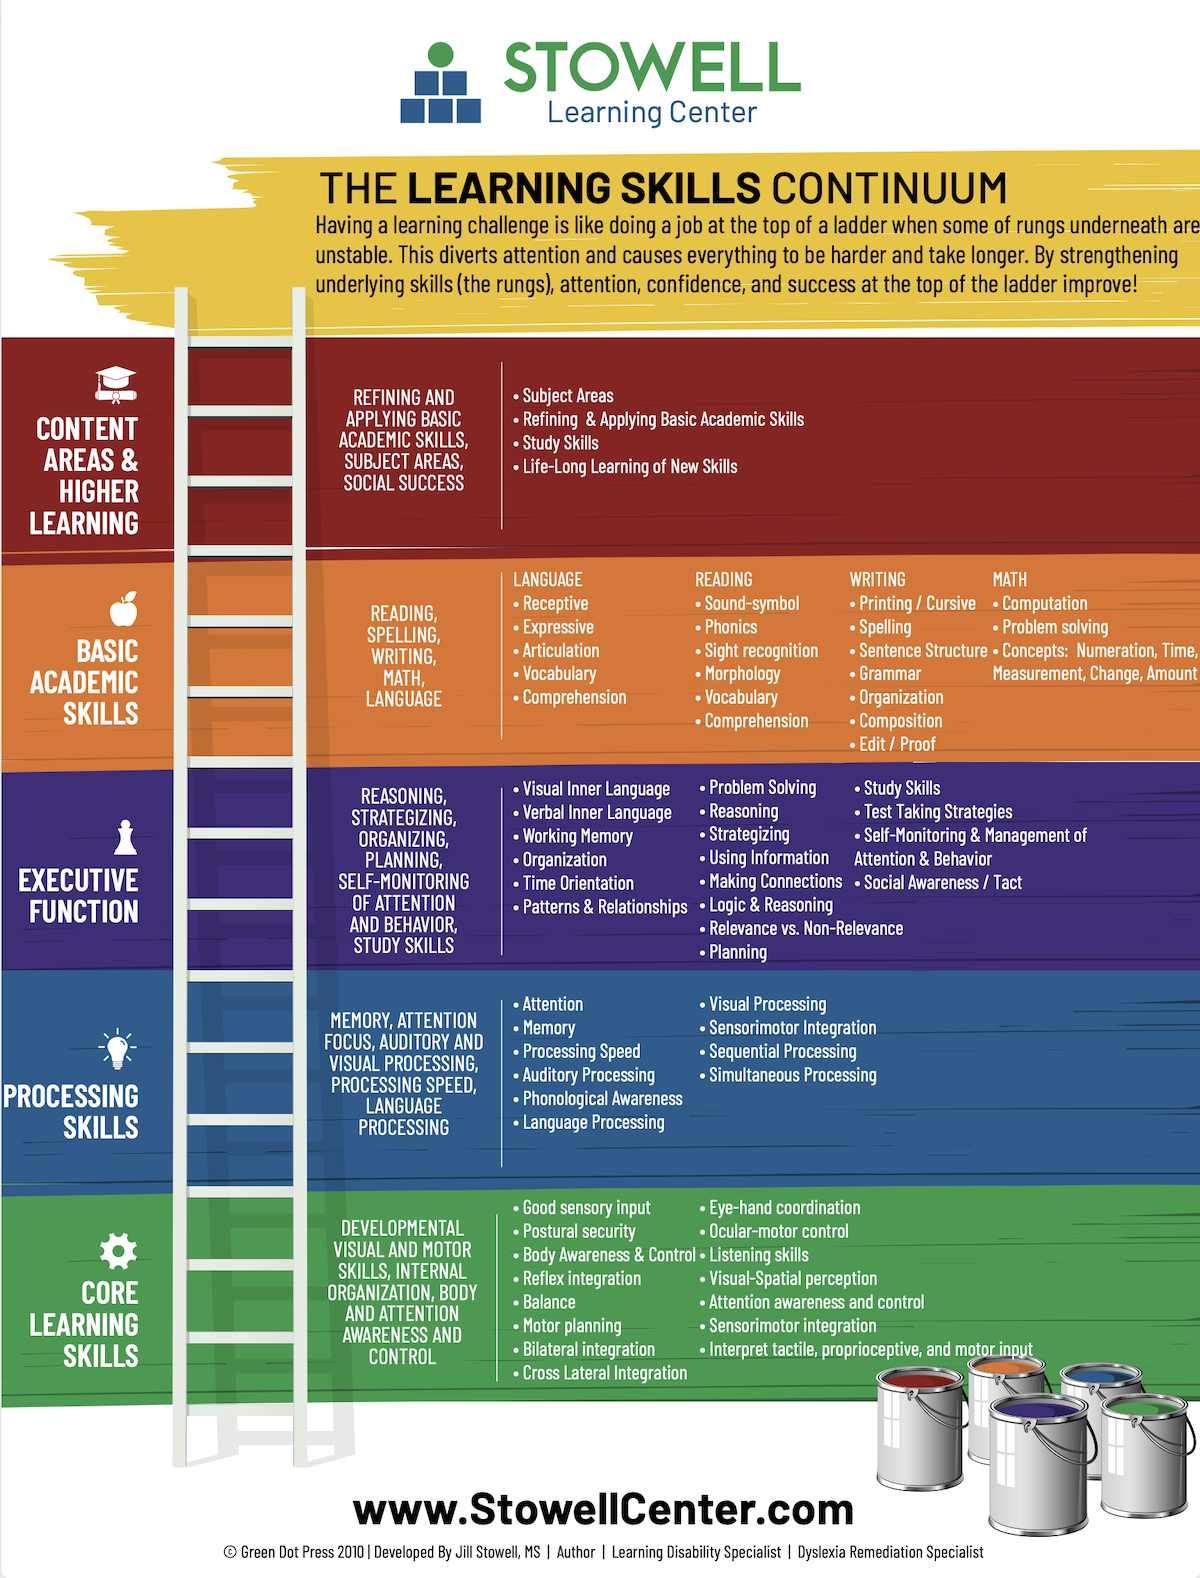 The Stowell Center - Learning Continuum Infographic